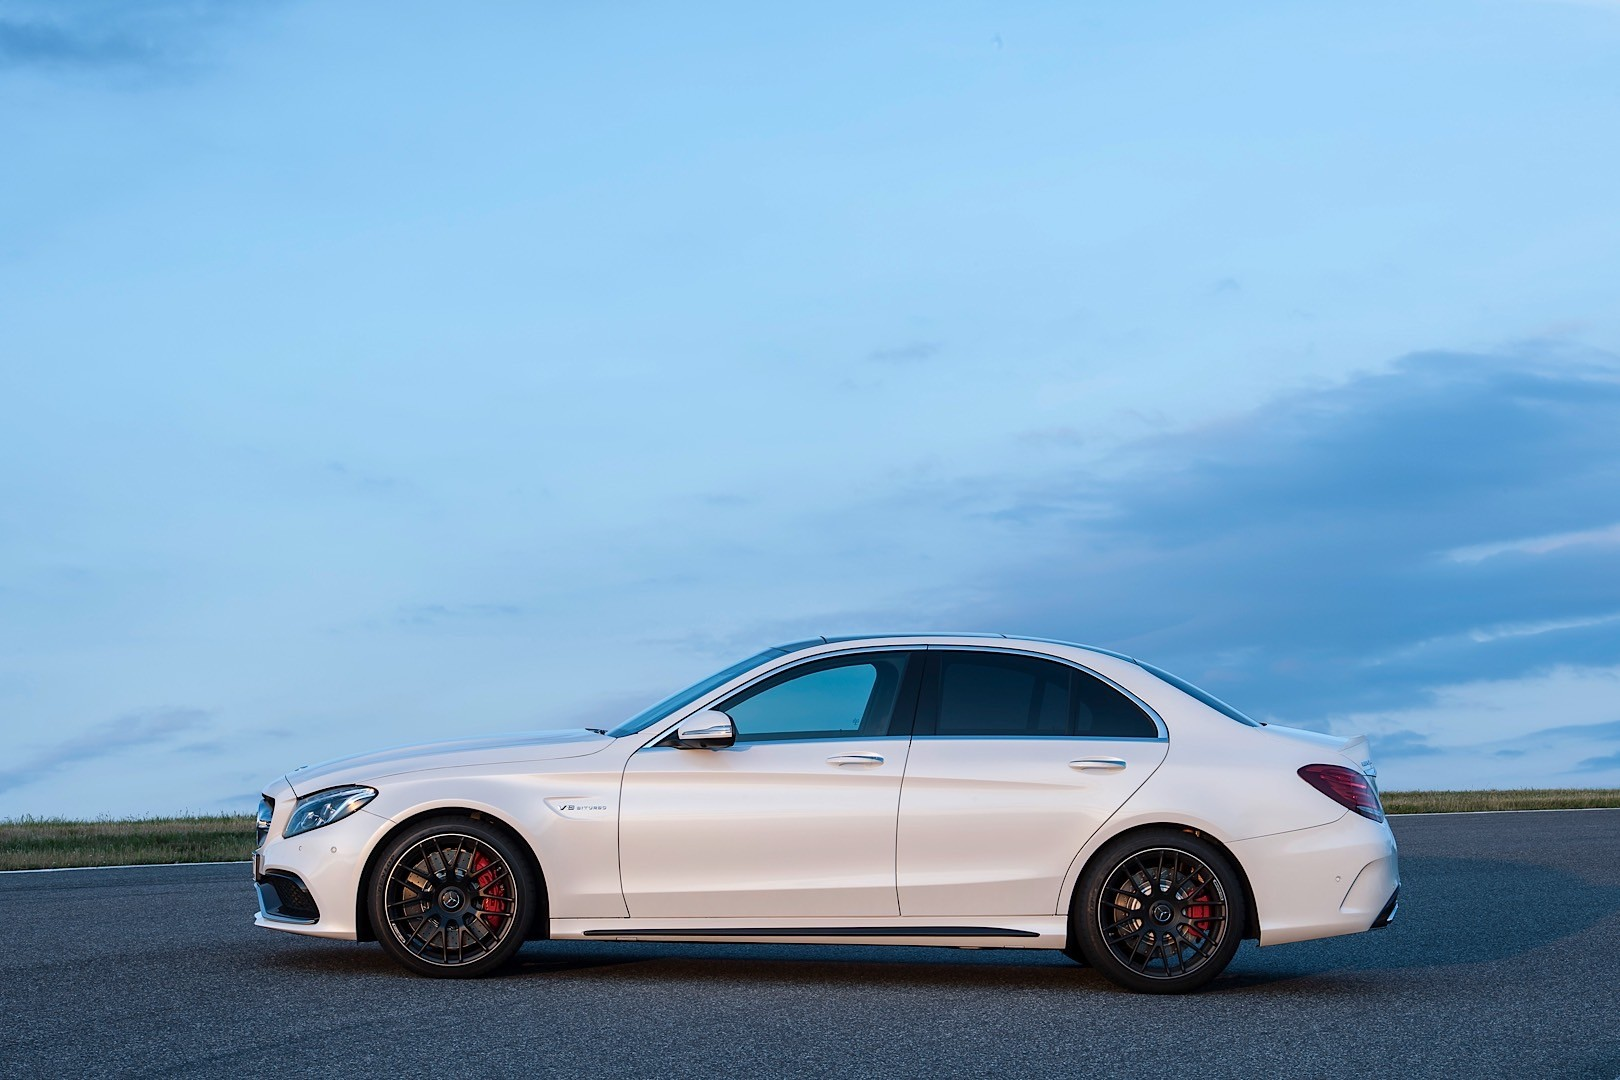 2014 mercedes c63 amg edition 507 us pricing revealed autoevolution. Black Bedroom Furniture Sets. Home Design Ideas